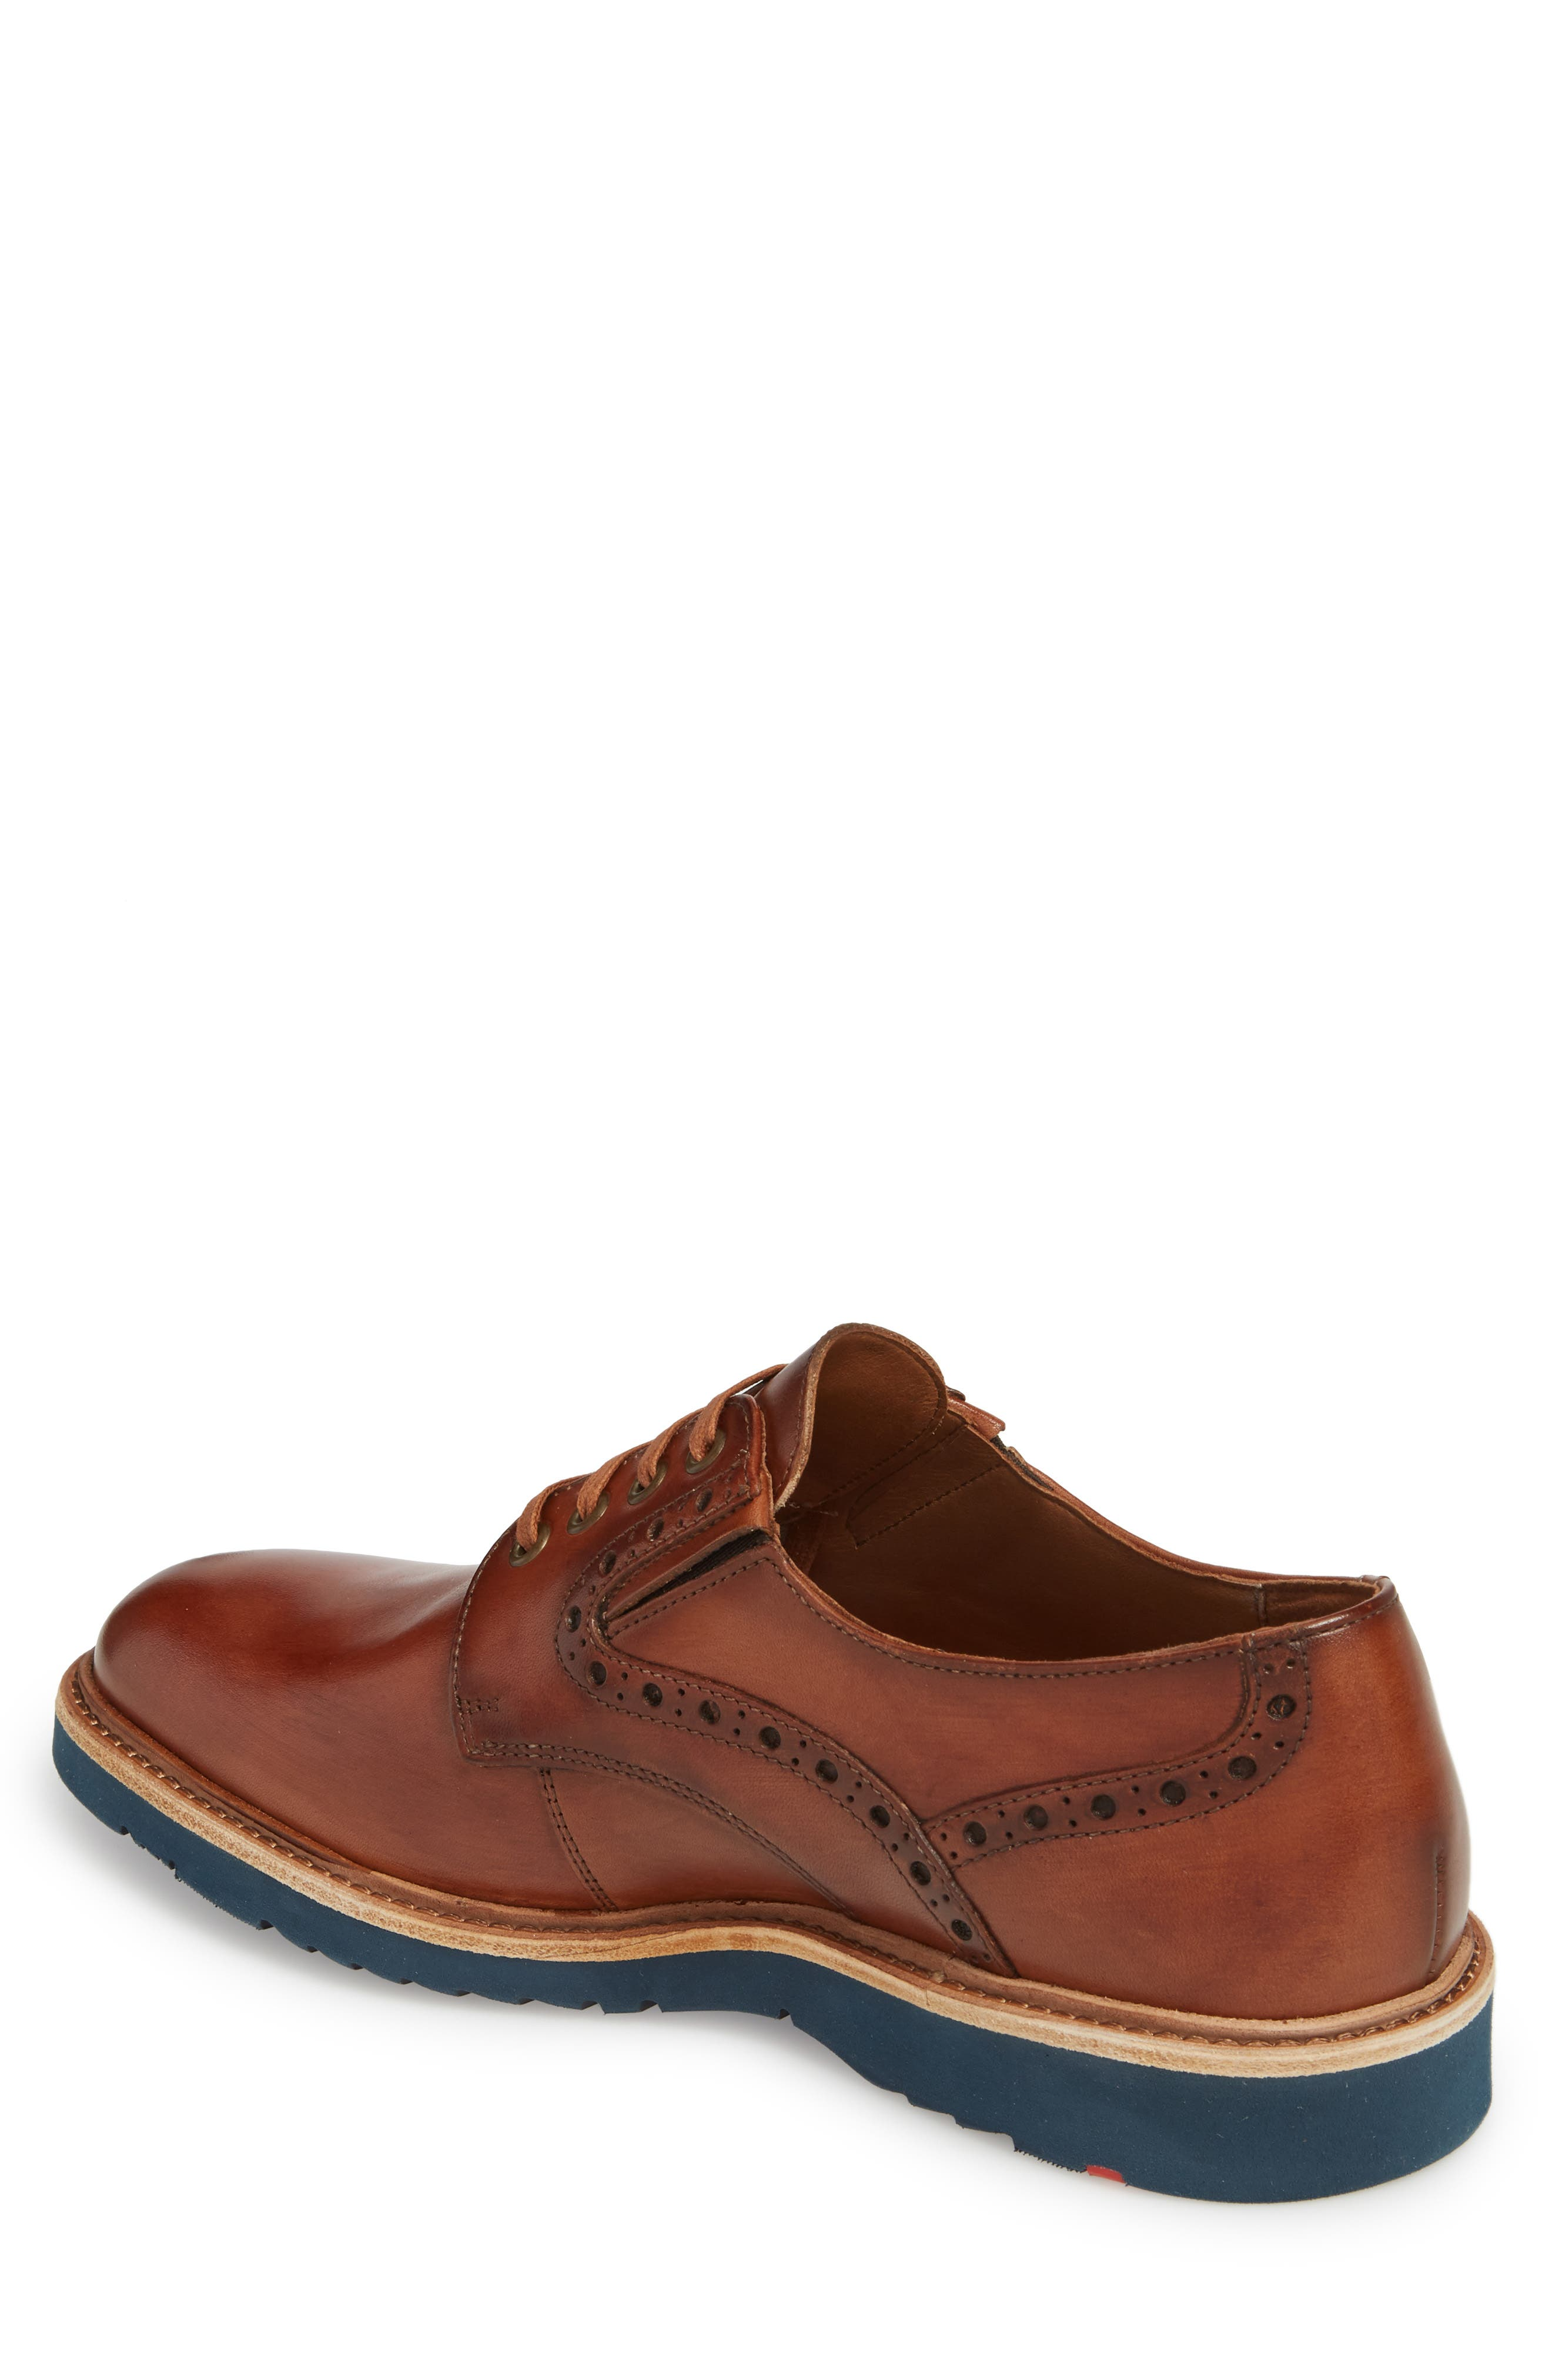 Kandy Plain Toe Derby,                             Alternate thumbnail 2, color,                             COGNAC LEATHER